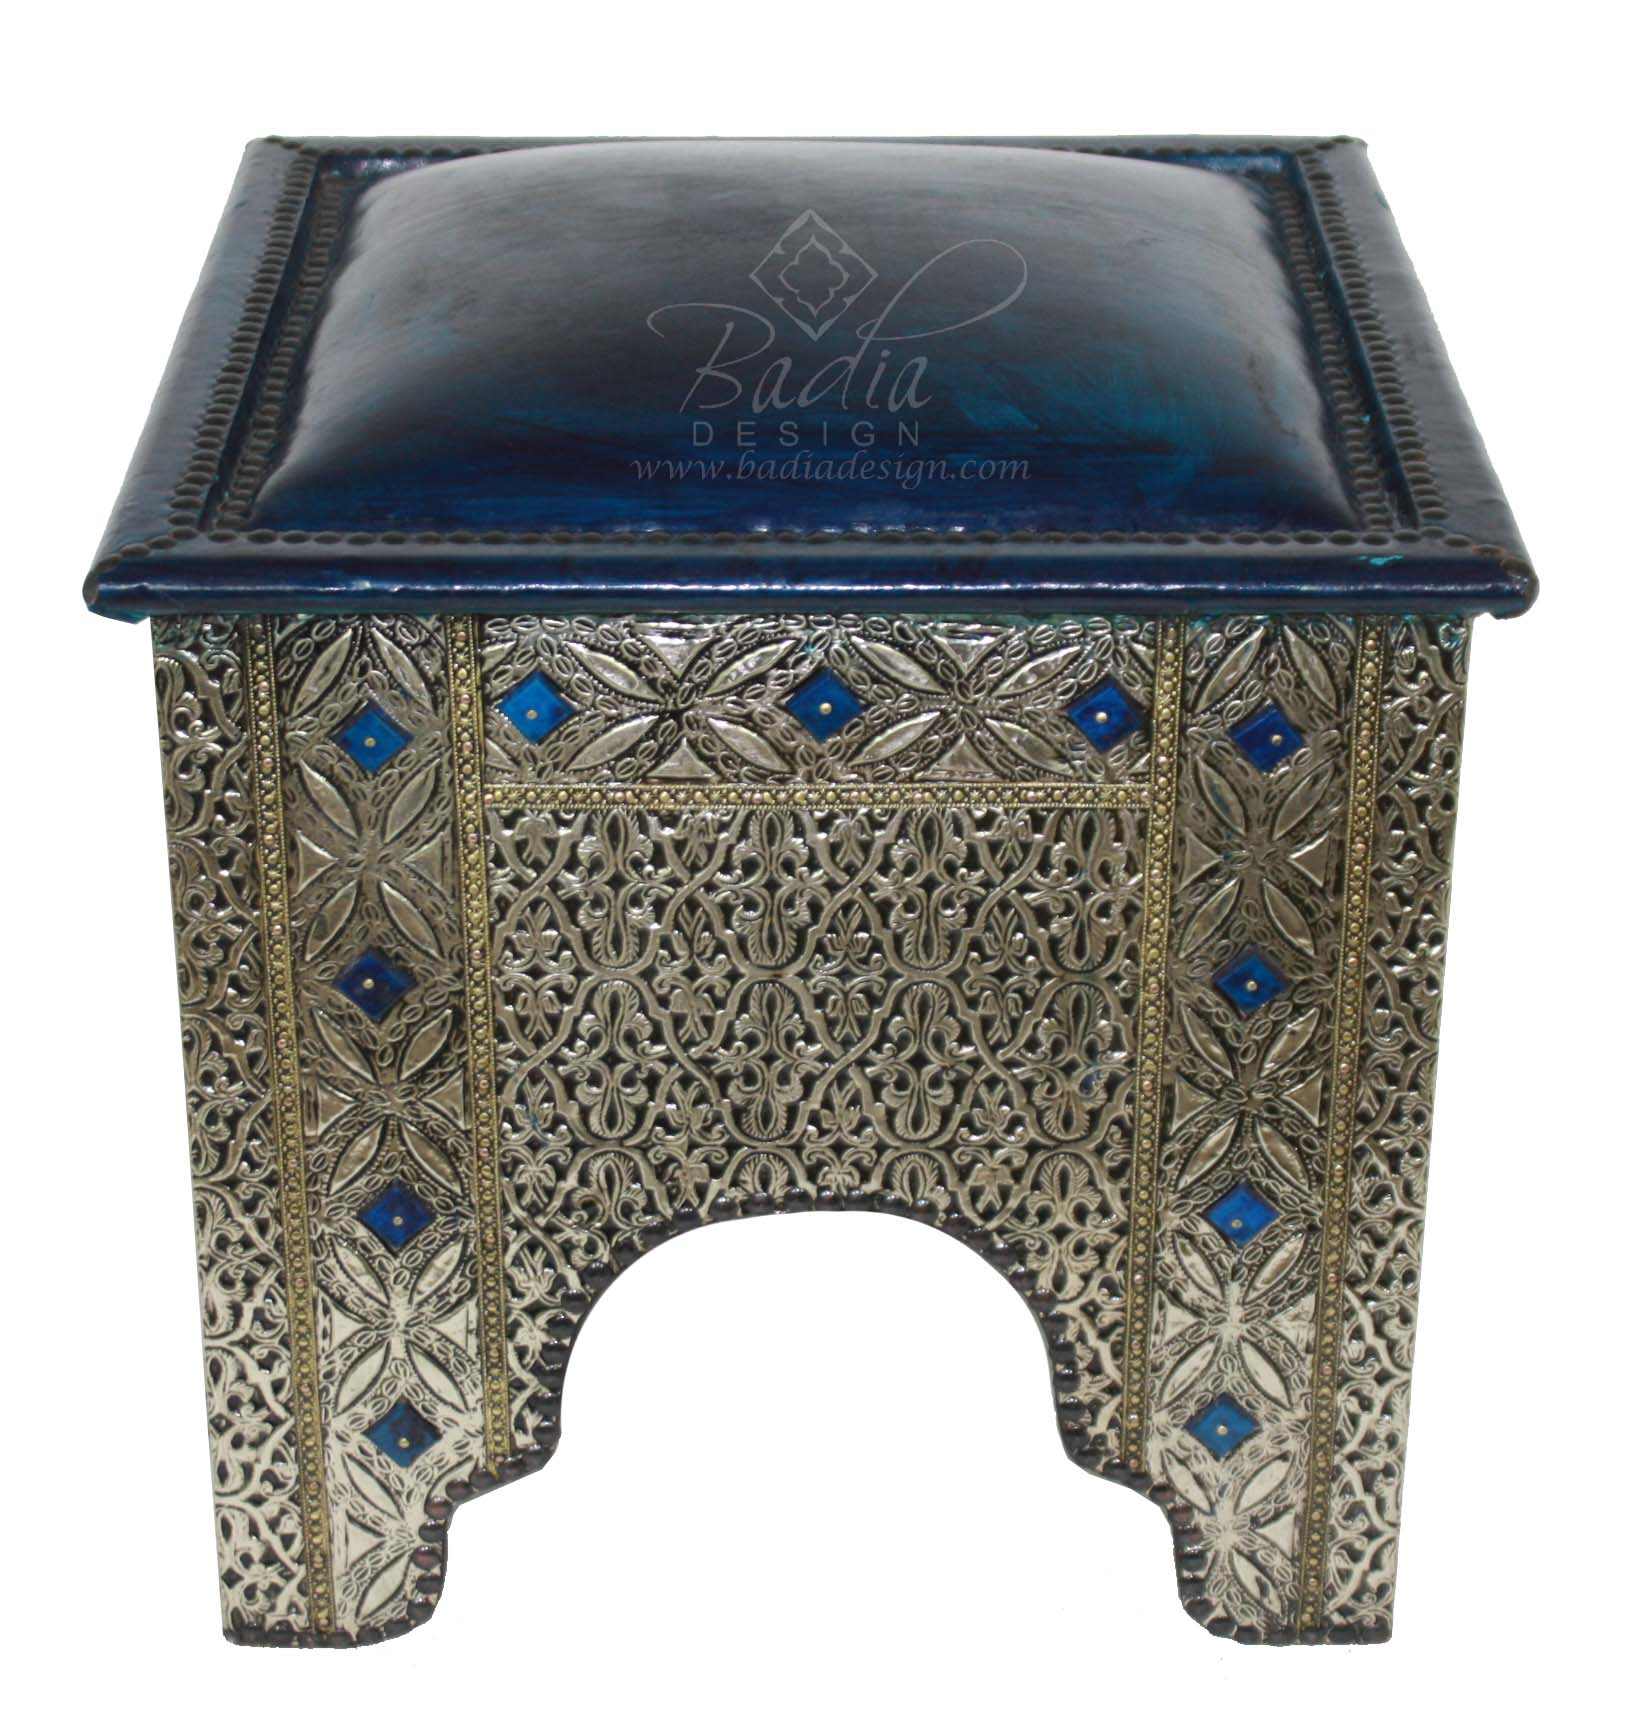 moroccan-metal-and-bone-hard-leather-ottoman-mb-ch031-1.jpg